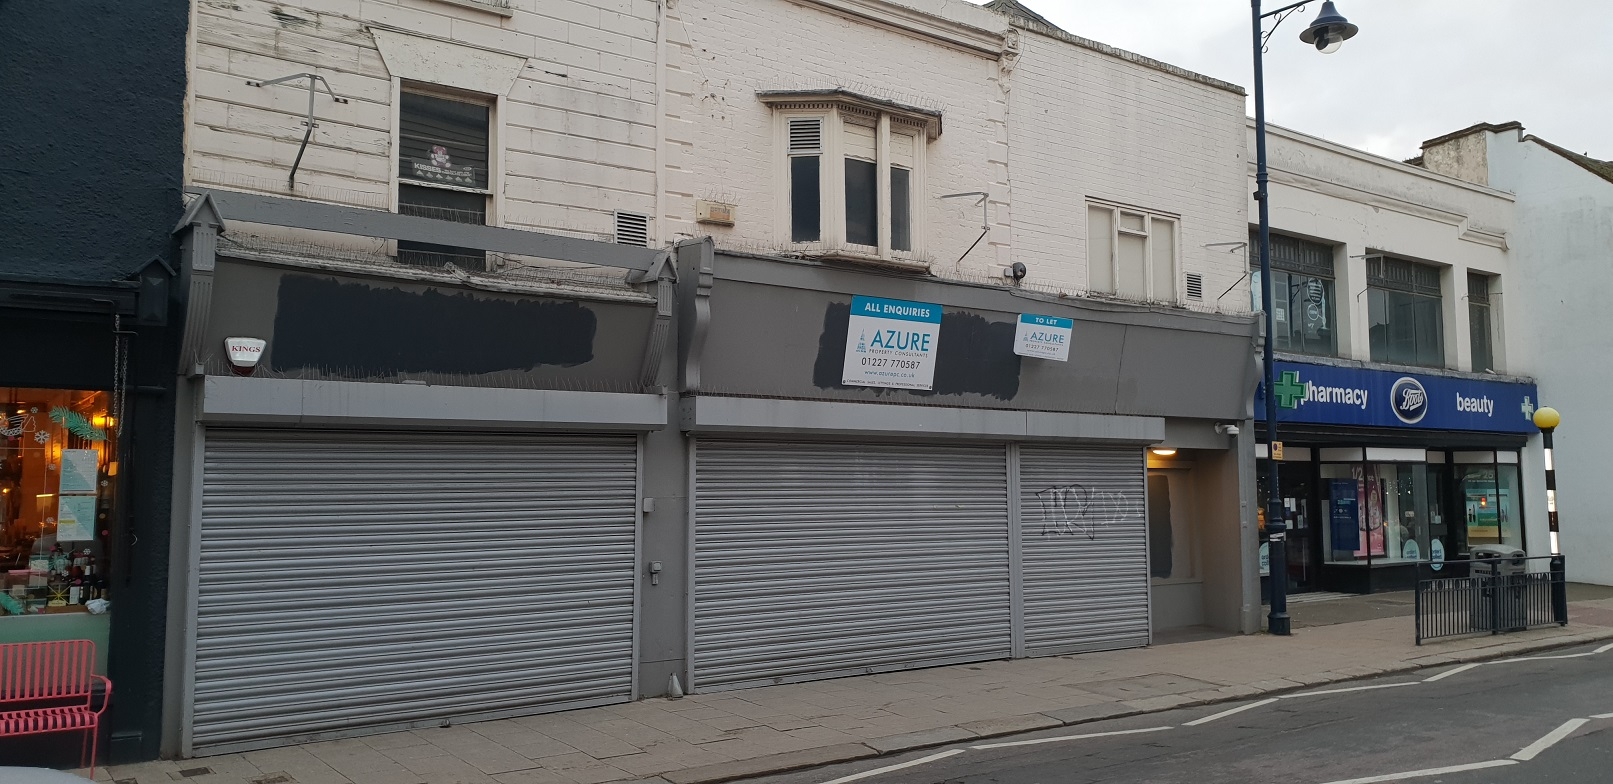 0 bed Shop for rent in Whitstable. From Azure Property Consultants